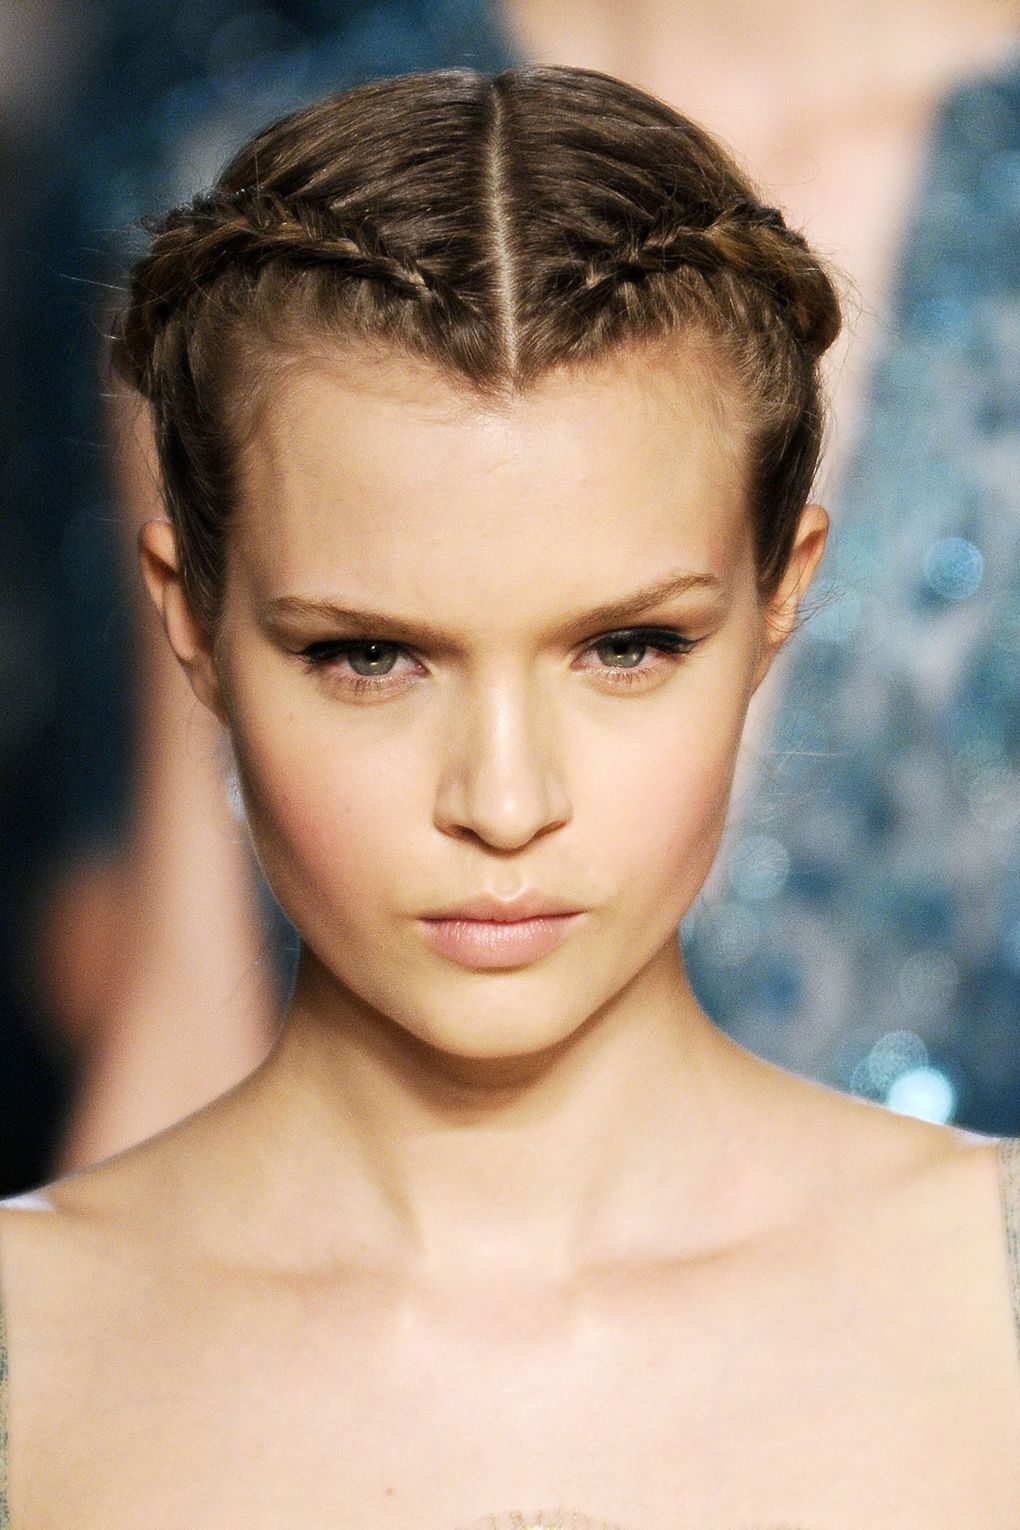 braided updo - 2021 Haircuts, Hairstyles and Hair Colors